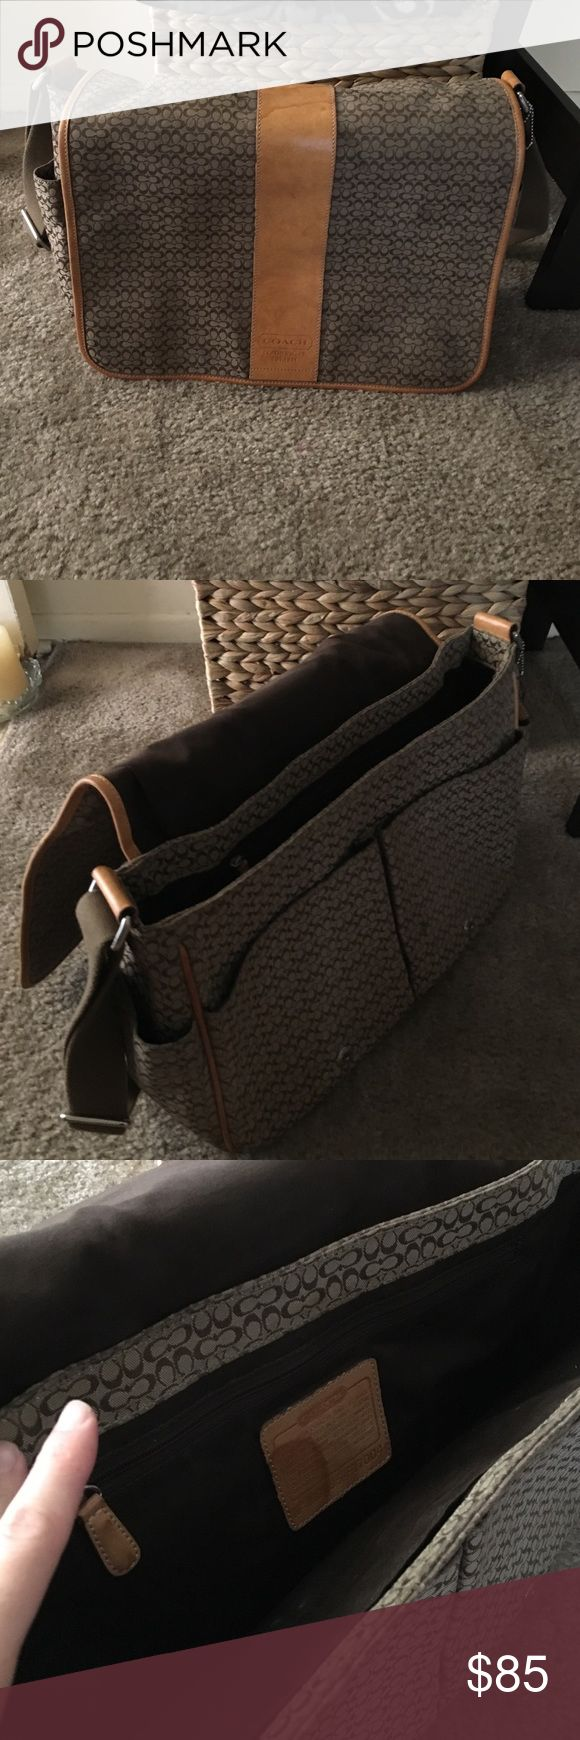 """Coach messenger bag Coach small signature """"c"""" messenger bag. Used for a school bag. Has water stains on the leather but in good condition. Coach Bags Crossbody Bags"""